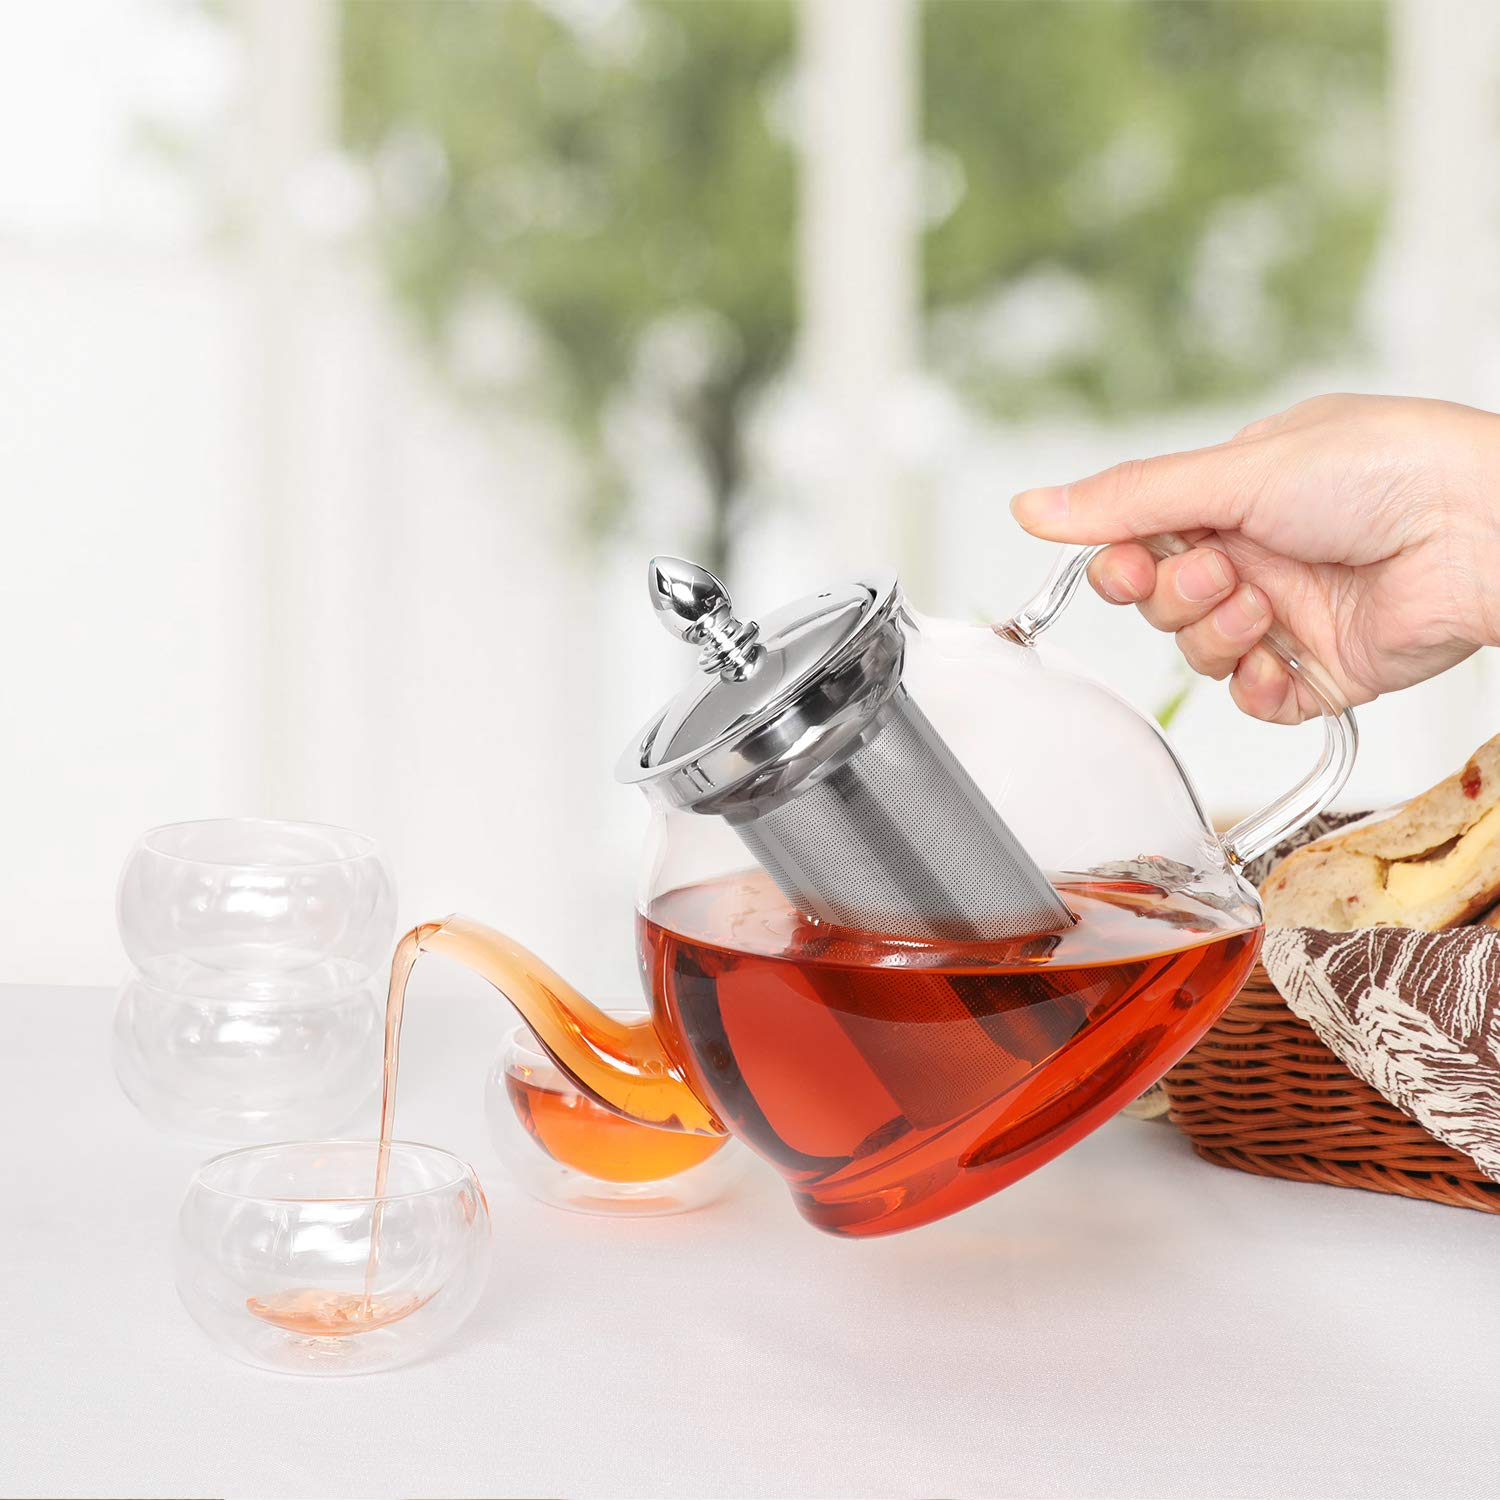 Hiware Teapot Set, 35 Oz Glass Teapot with Removable Infuser and Cups, Stovetop Safe Tea Kettle, Blooming and Loose Leaf Tea Maker Set by Hiware (Image #5)